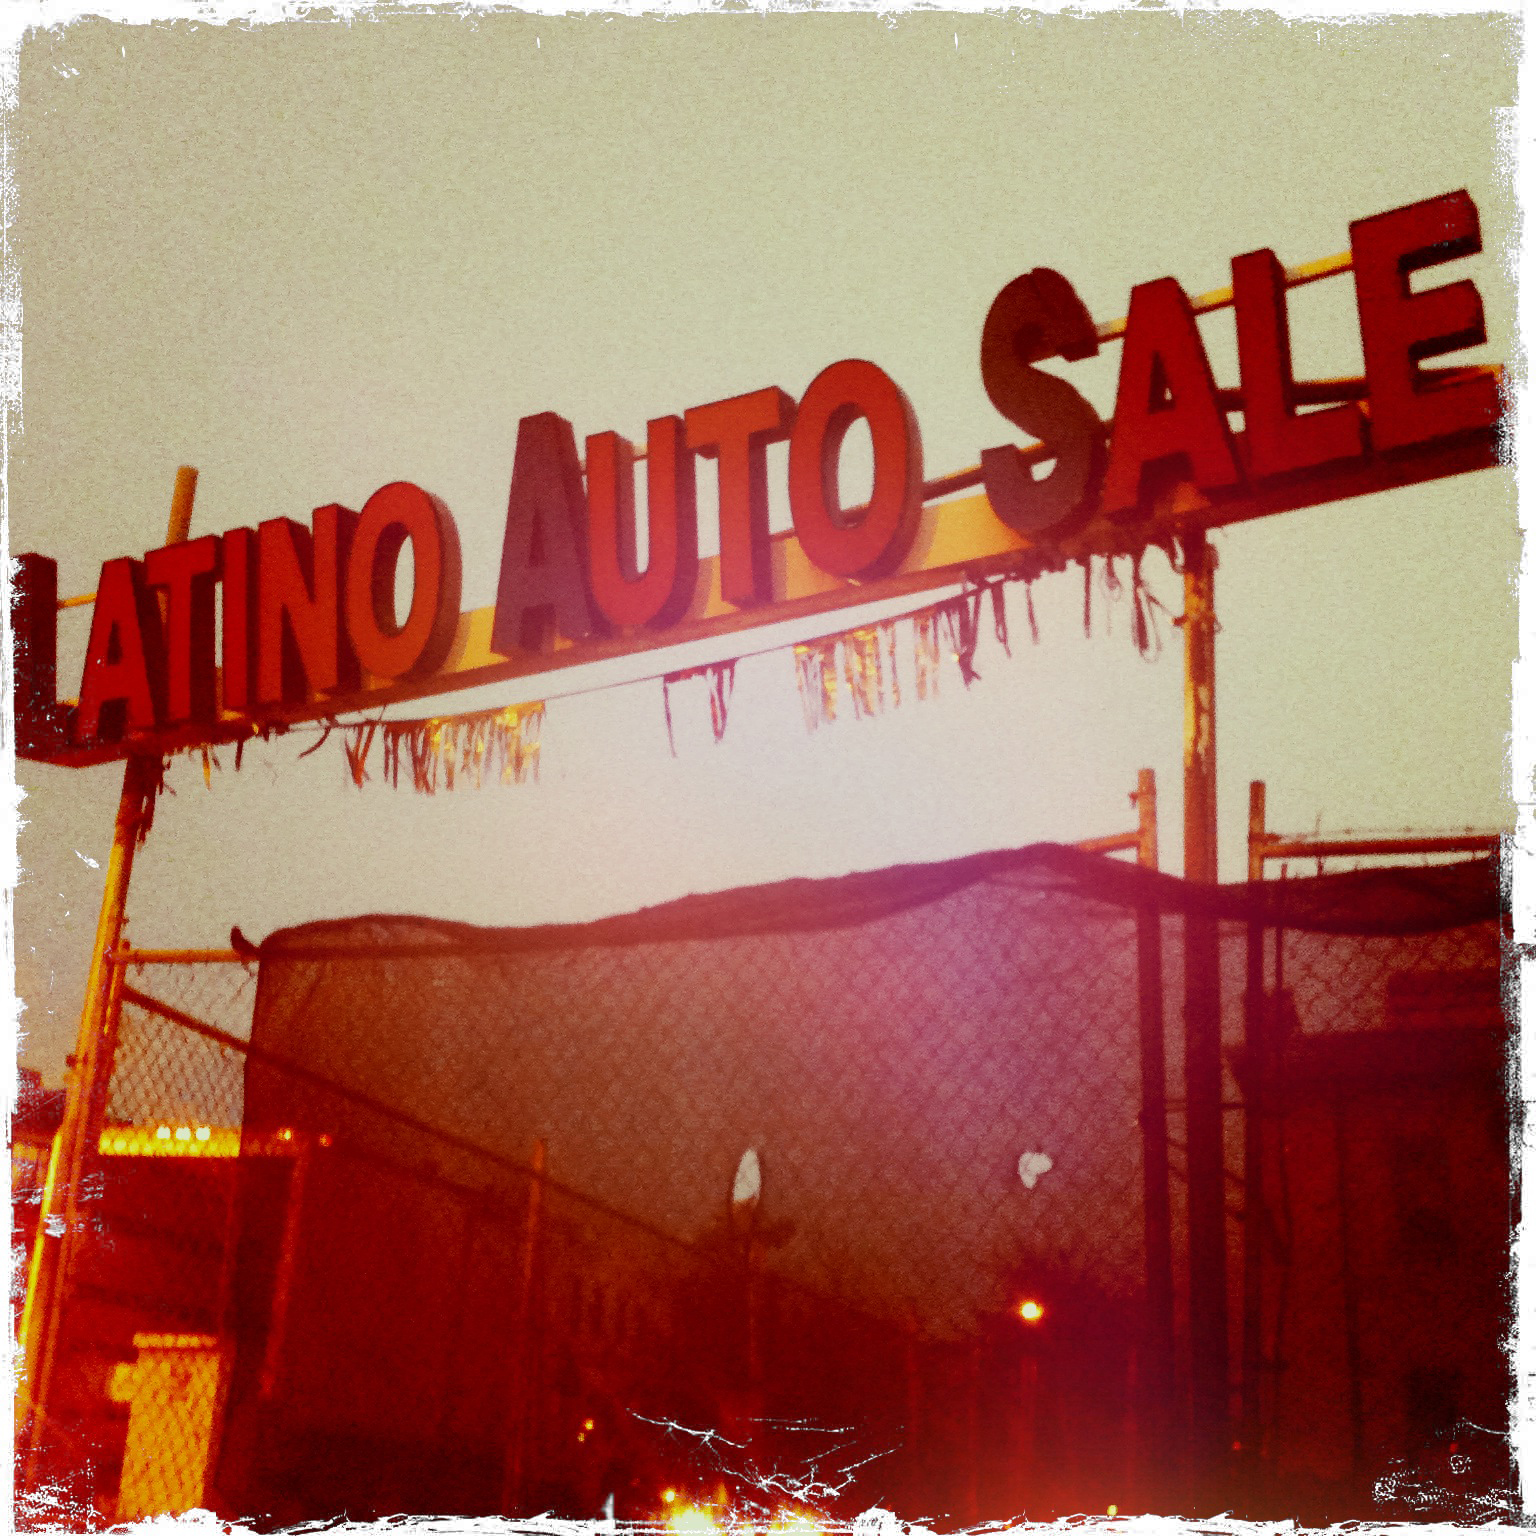 Latino Auto Sales sign